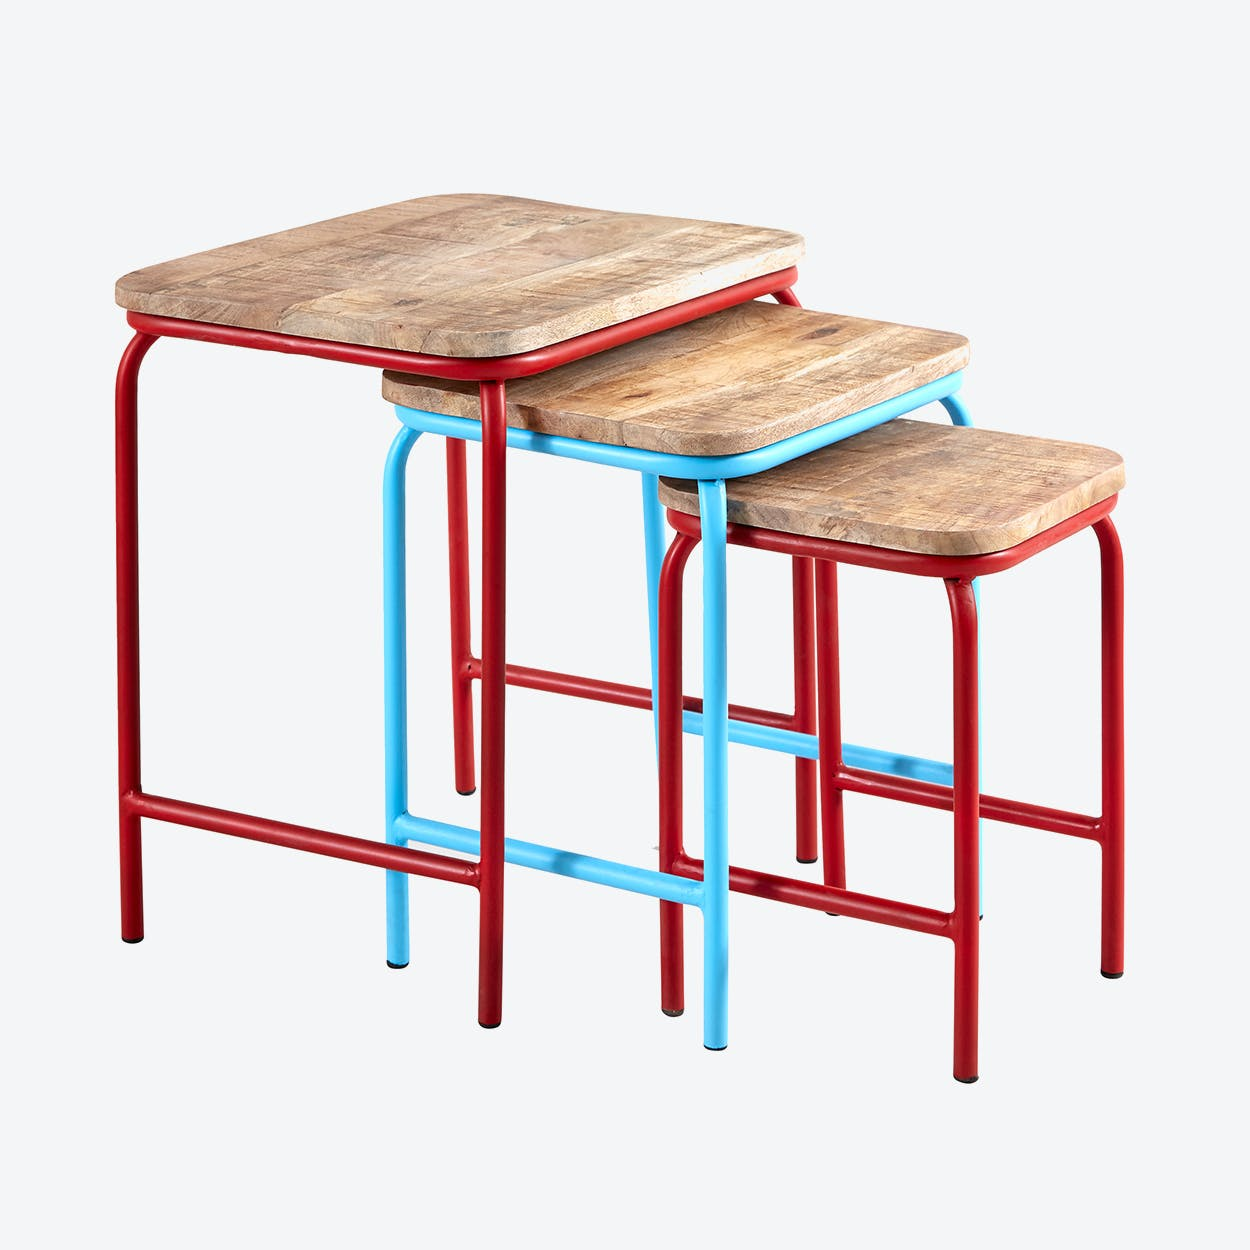 Mango Wood Nest of 3 Tables